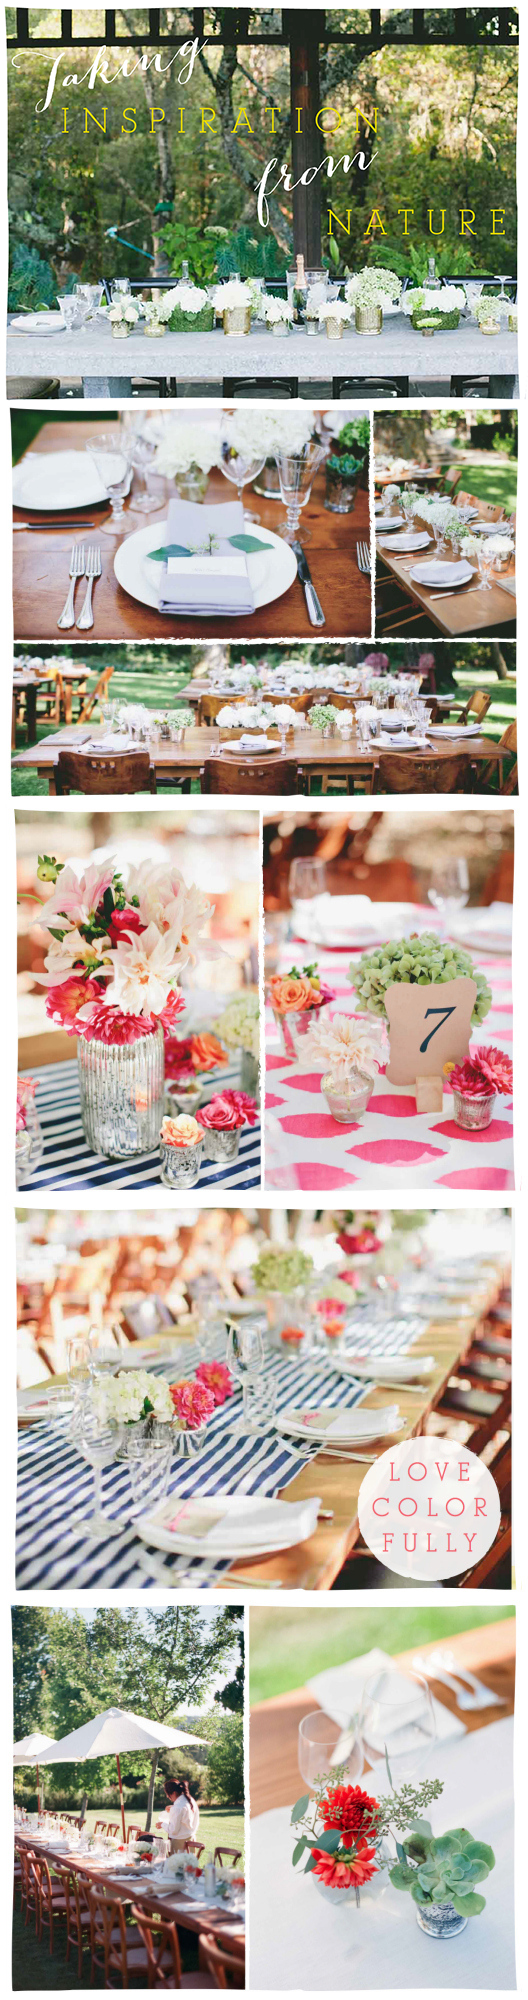 off-the-beaten-path-weddings-design1